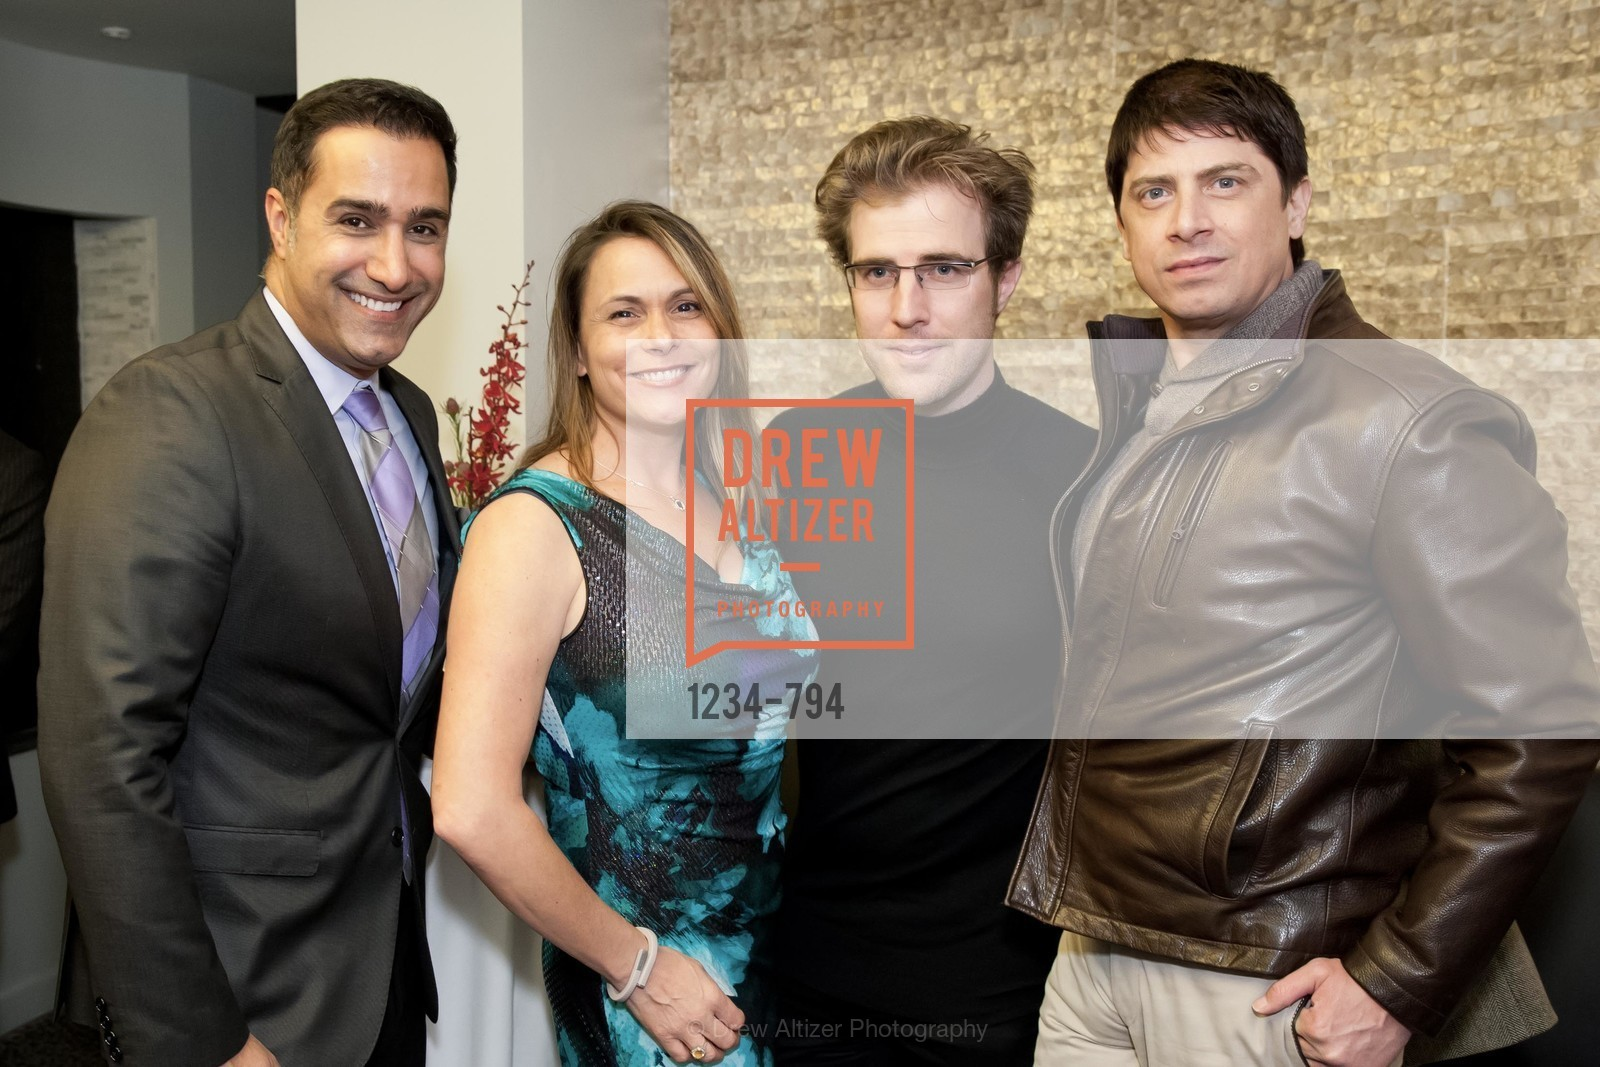 Johnny Moallempour, Teresa Rodriguez, Matthew Kimball, Aubrey Brewster, EPI CENTER MedSpa Anniversary and Launch of REPLETE - Evening Celebration, US, April 22nd, 2015,Drew Altizer, Drew Altizer Photography, full-service agency, private events, San Francisco photographer, photographer california